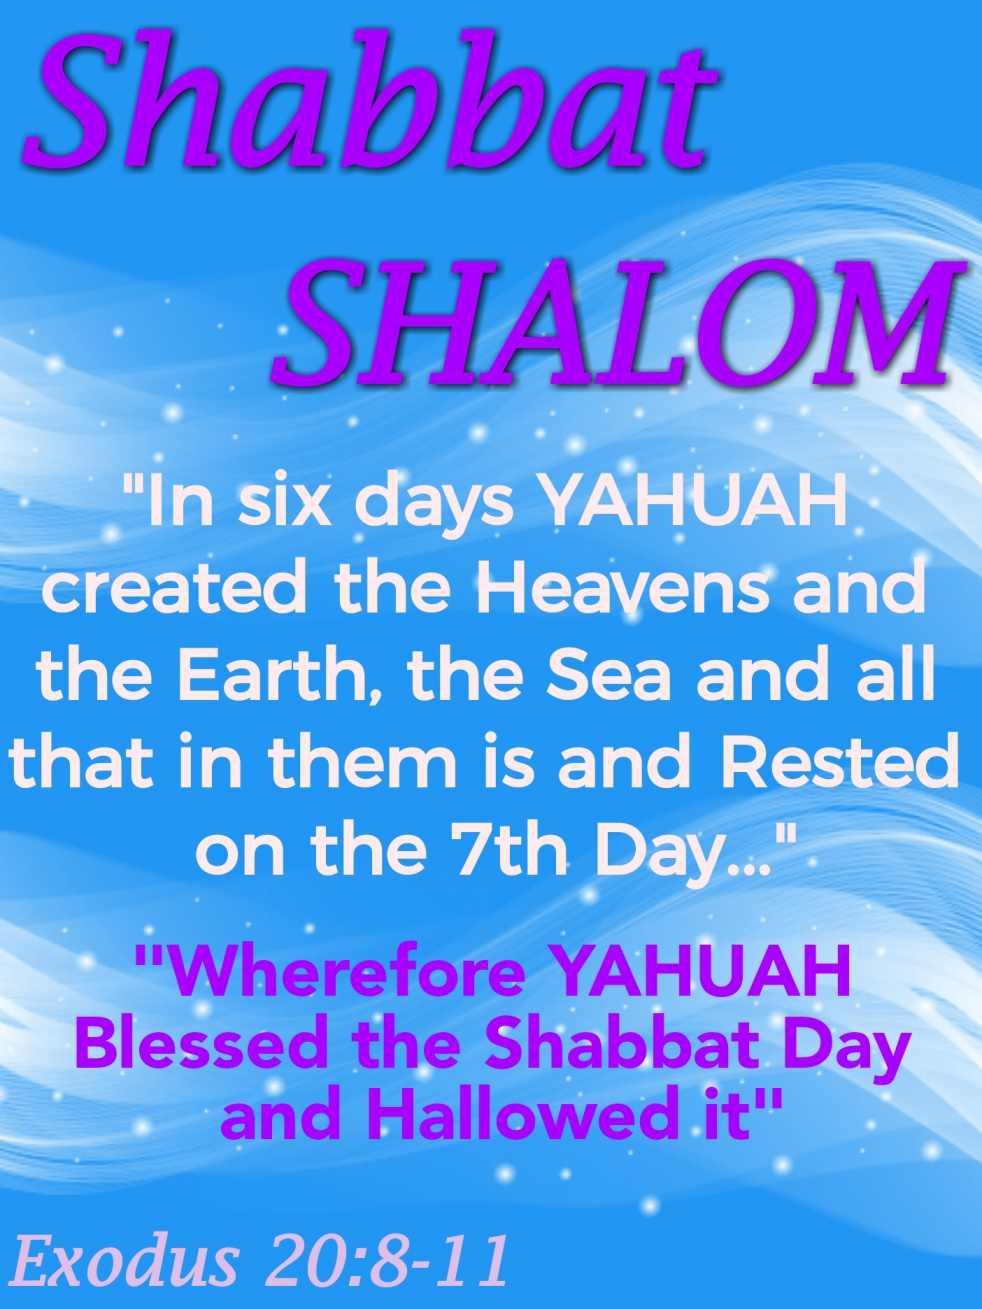 [SHABBAT SHALOM | YOUR'S HIS THE KINGDOM - imagen de portada